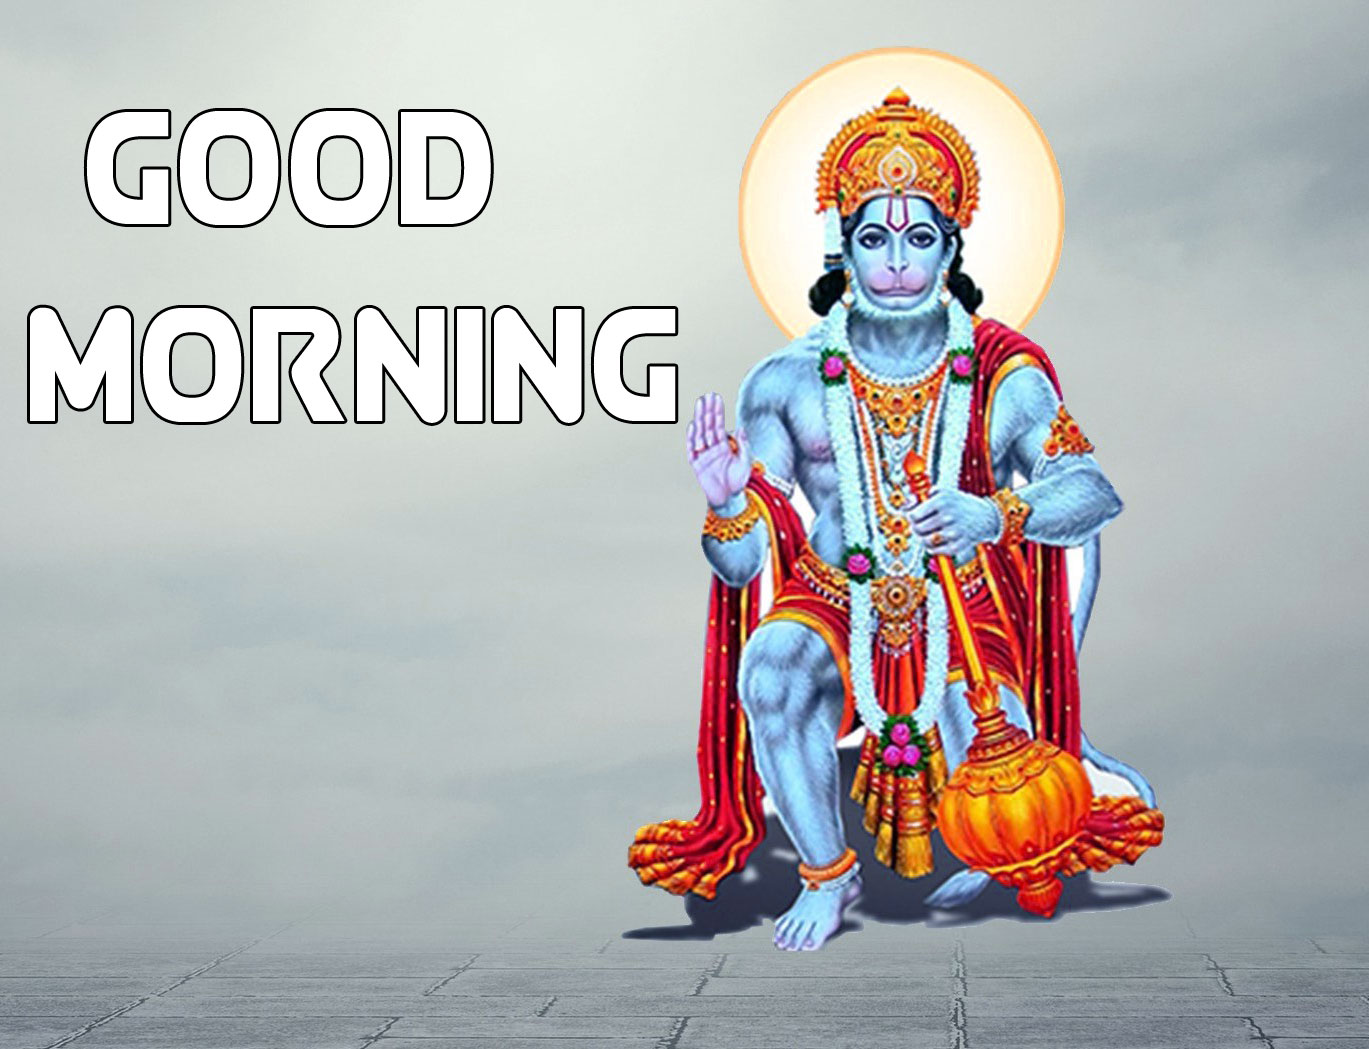 New Hanuman Ji Good Morning Images Pics Download for Friend